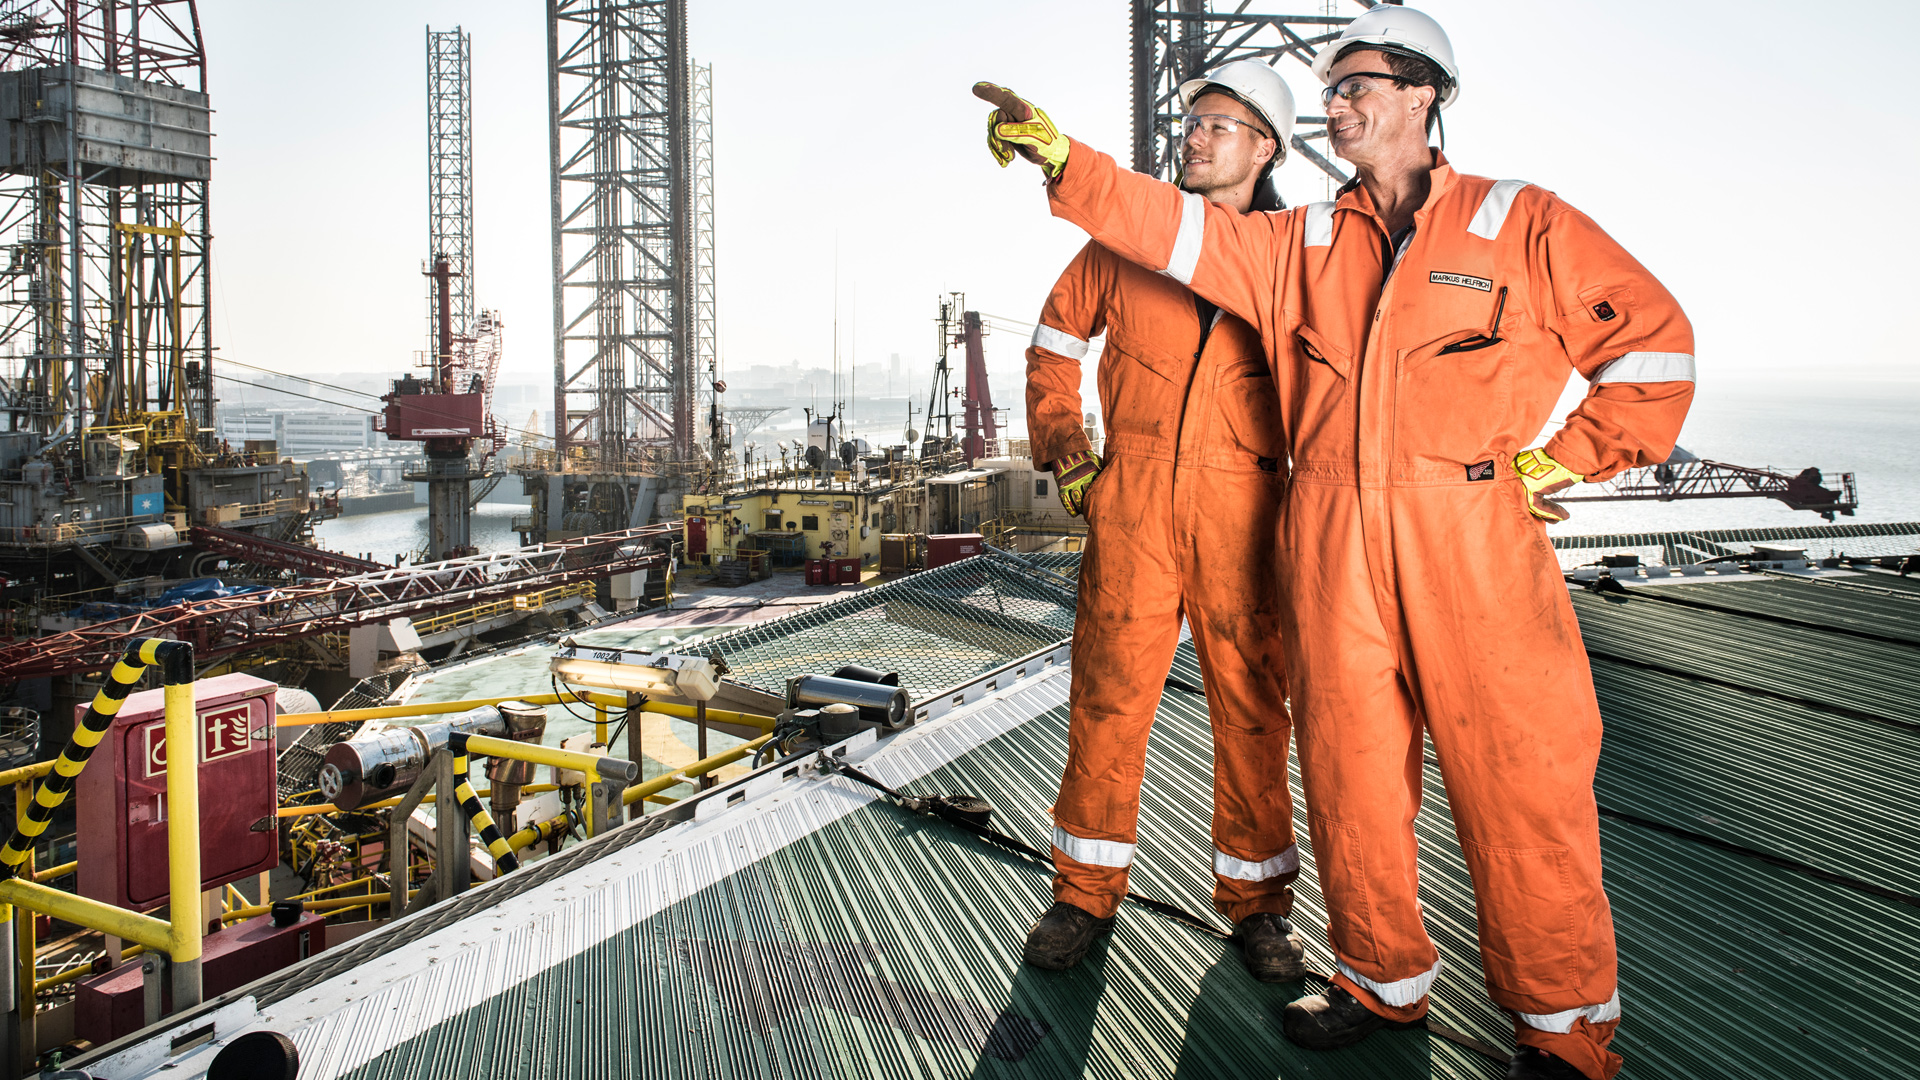 Wintershall Dea employees at work